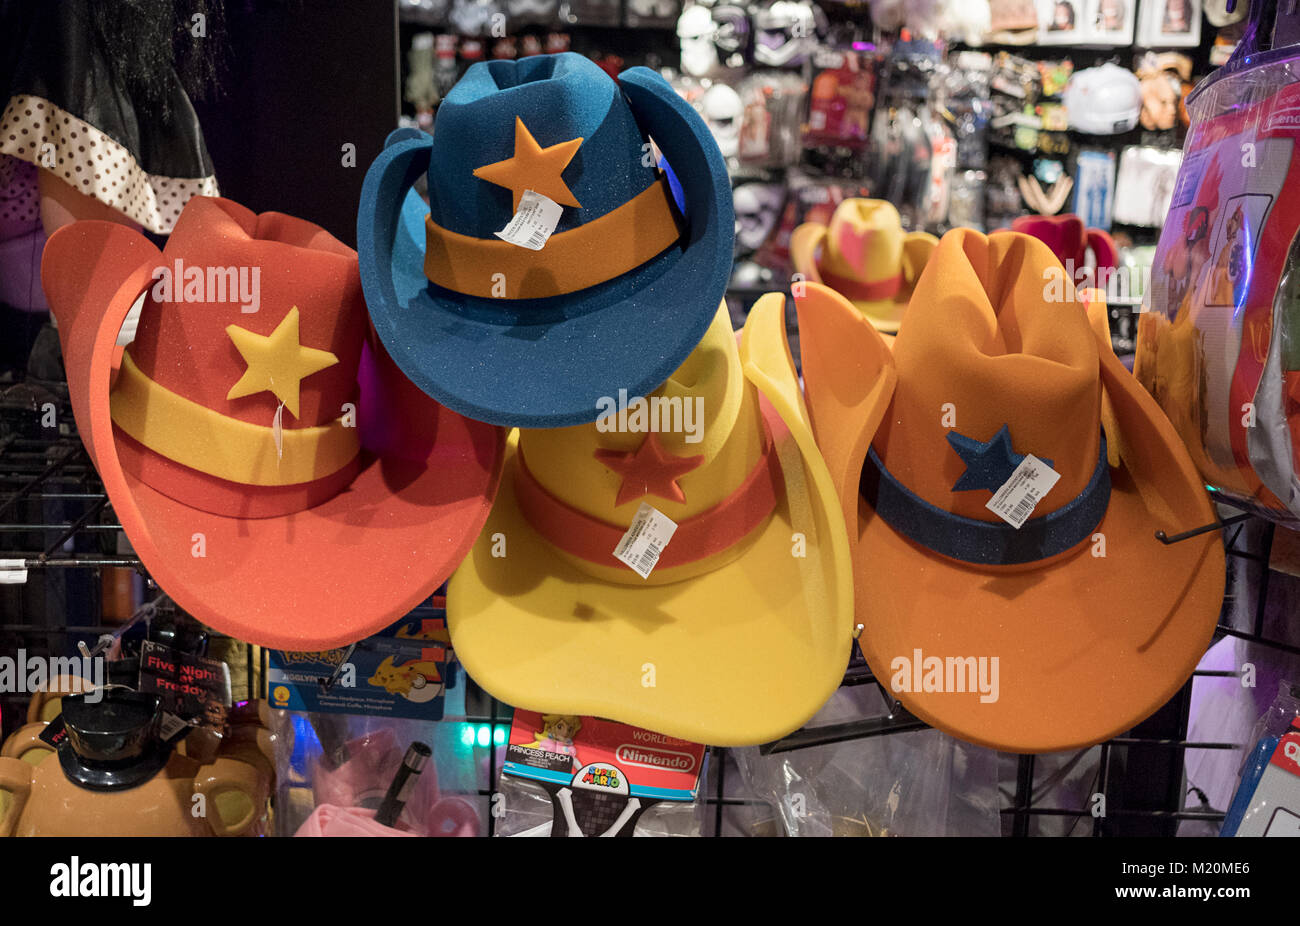 26cc74c4fc839 Oversized colorful foam cowboy hats for sale at the Halloween Adventure  costume store on Broadway in